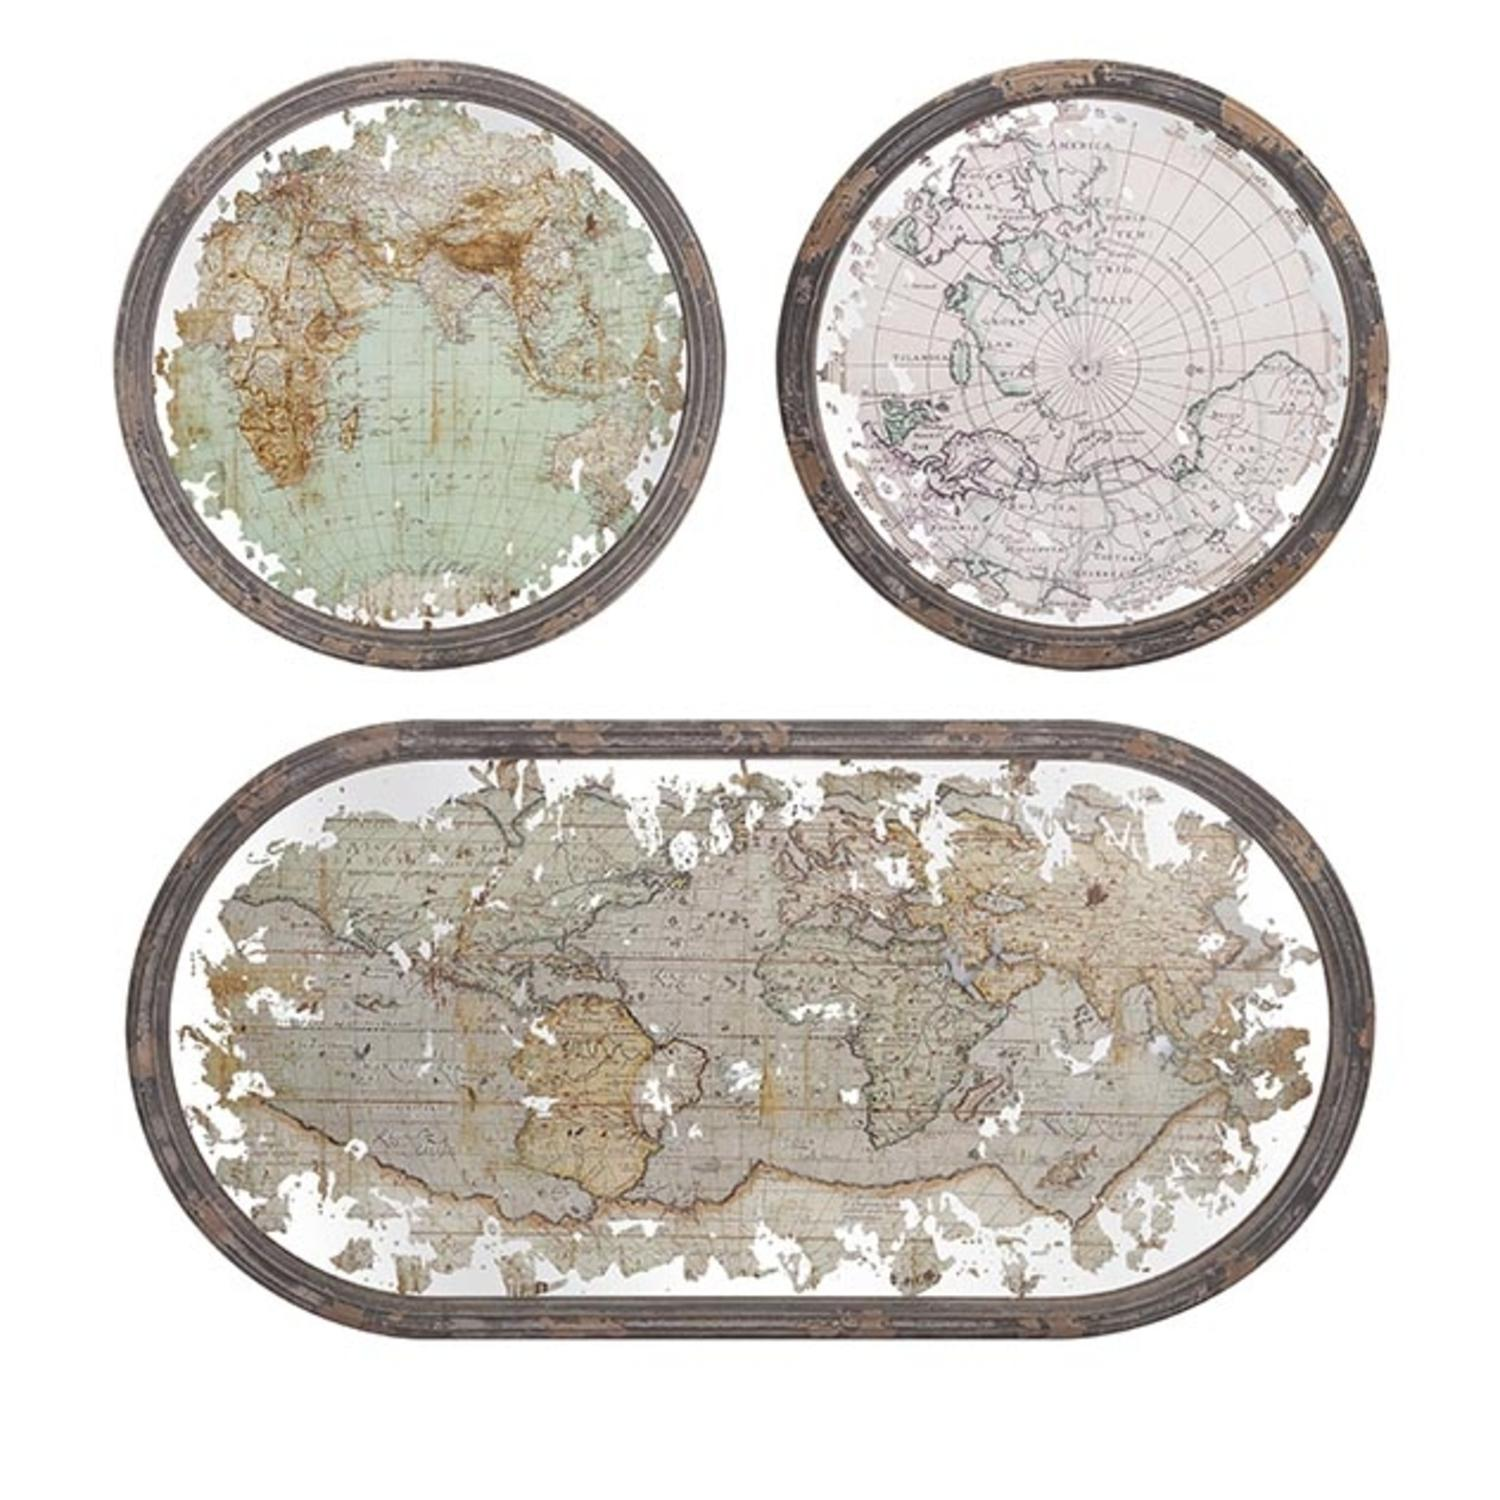 Round Wood Wall Art set of 3 antique style mirrored world map wood framed oval and